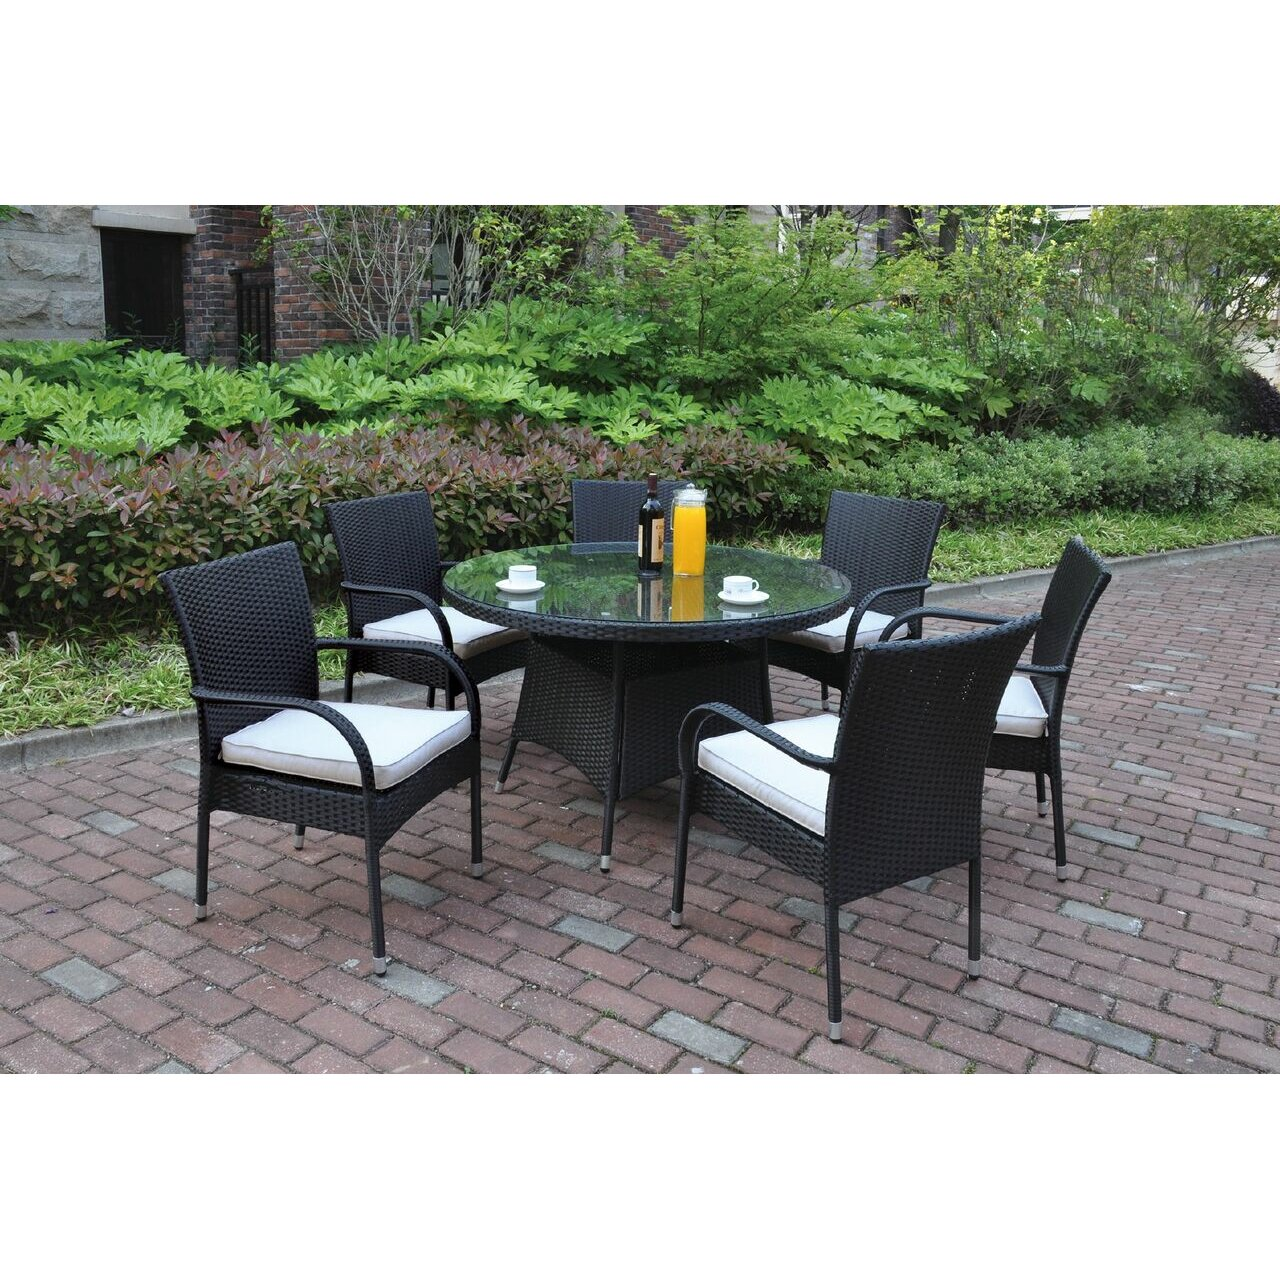 outdoor patio furniture six person patio dining sets jb patio sku